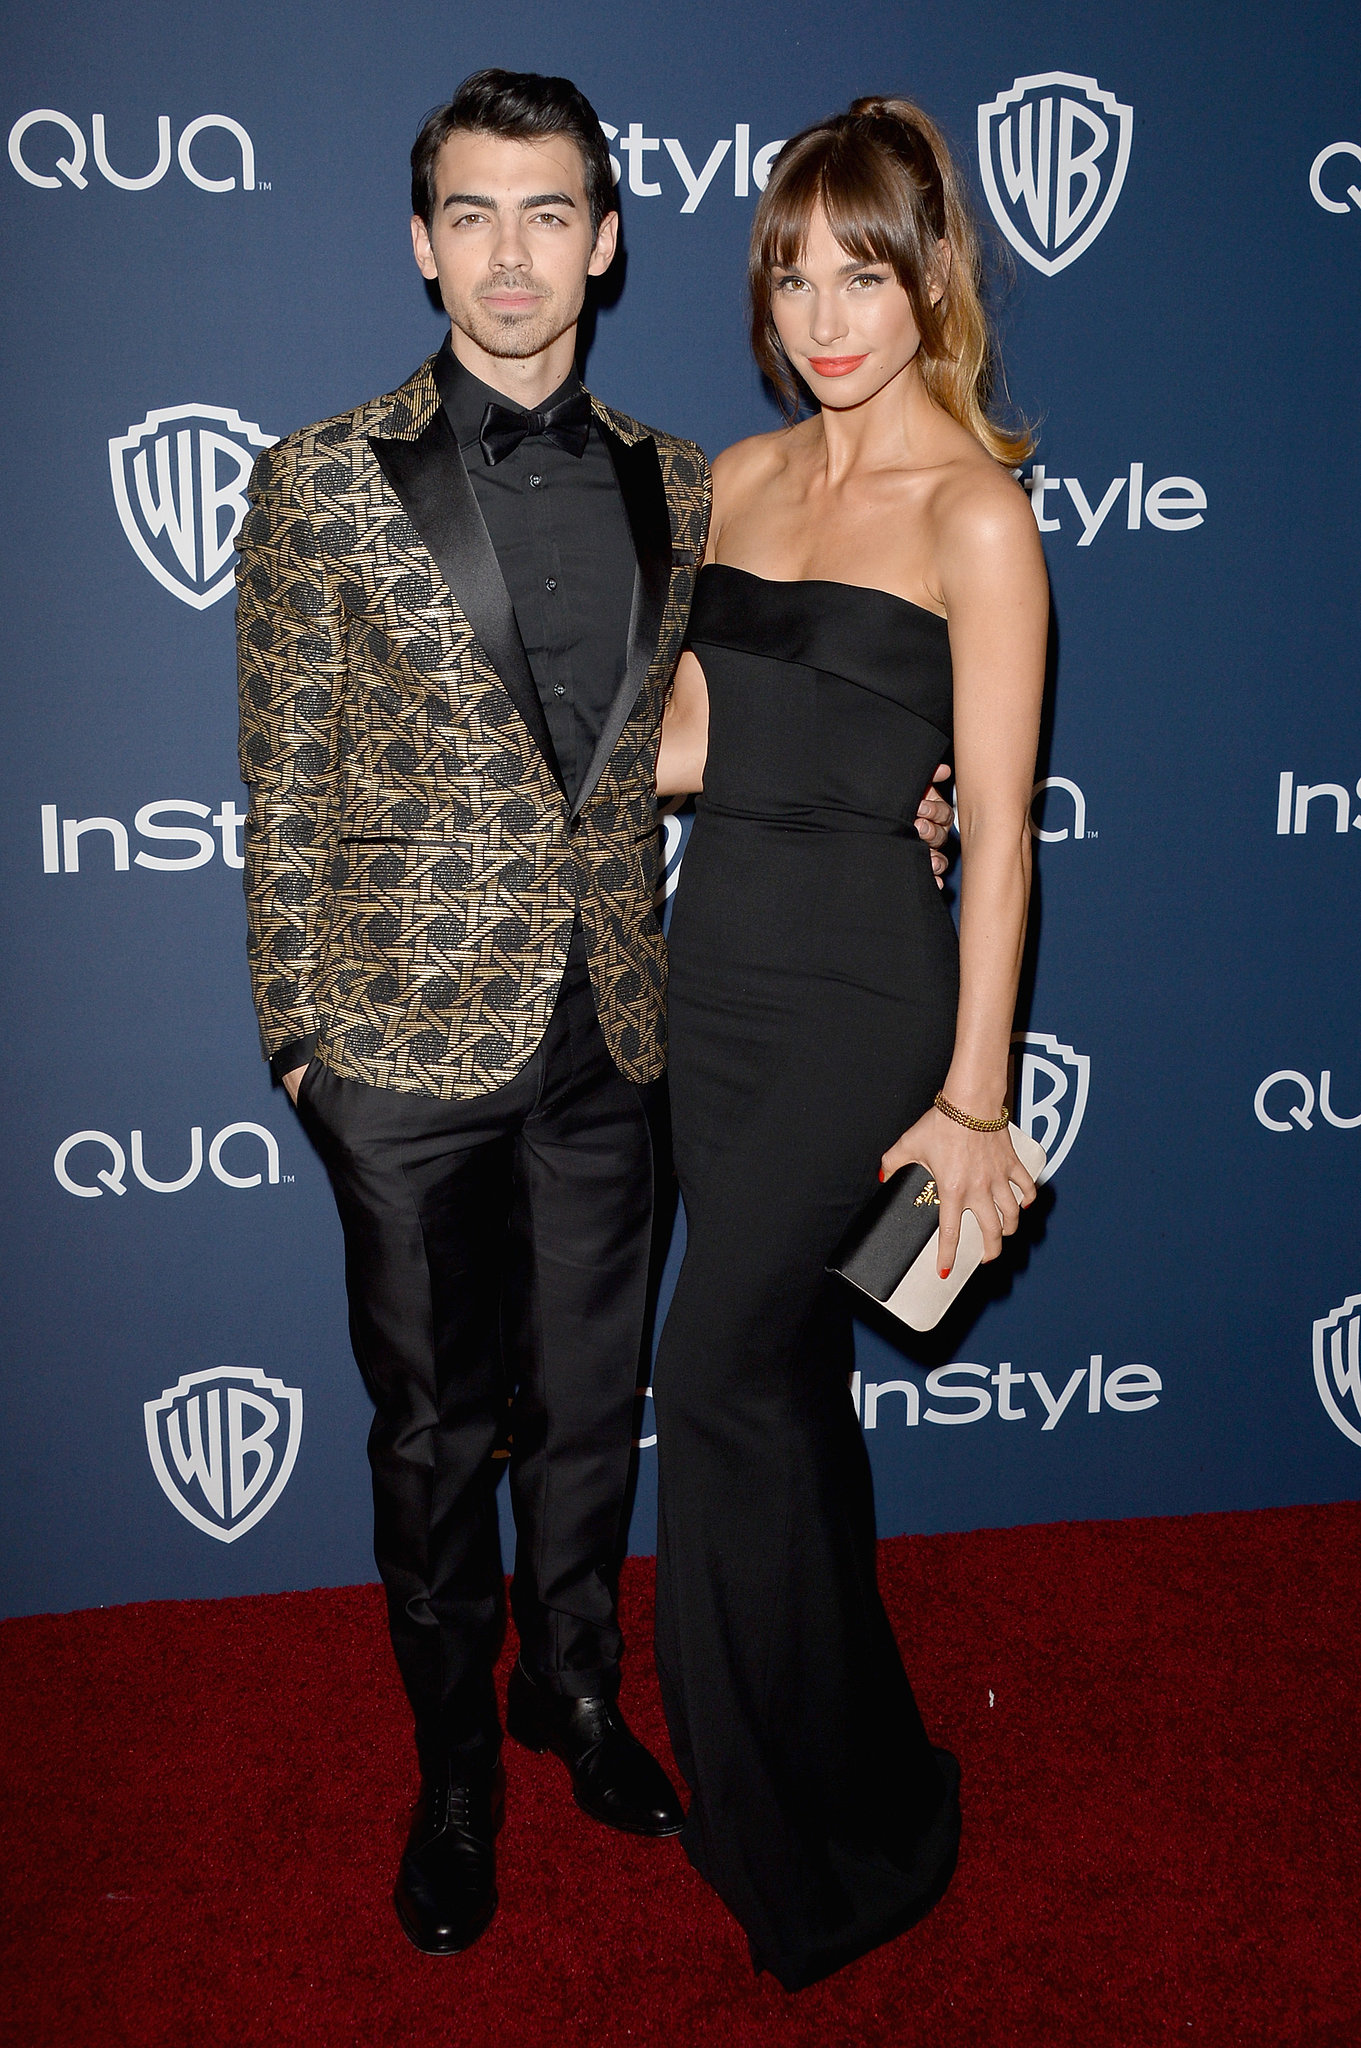 Joe Jonas and his girlfriend, Blanda Eggenschwiler, posed together as they arrived for the party.